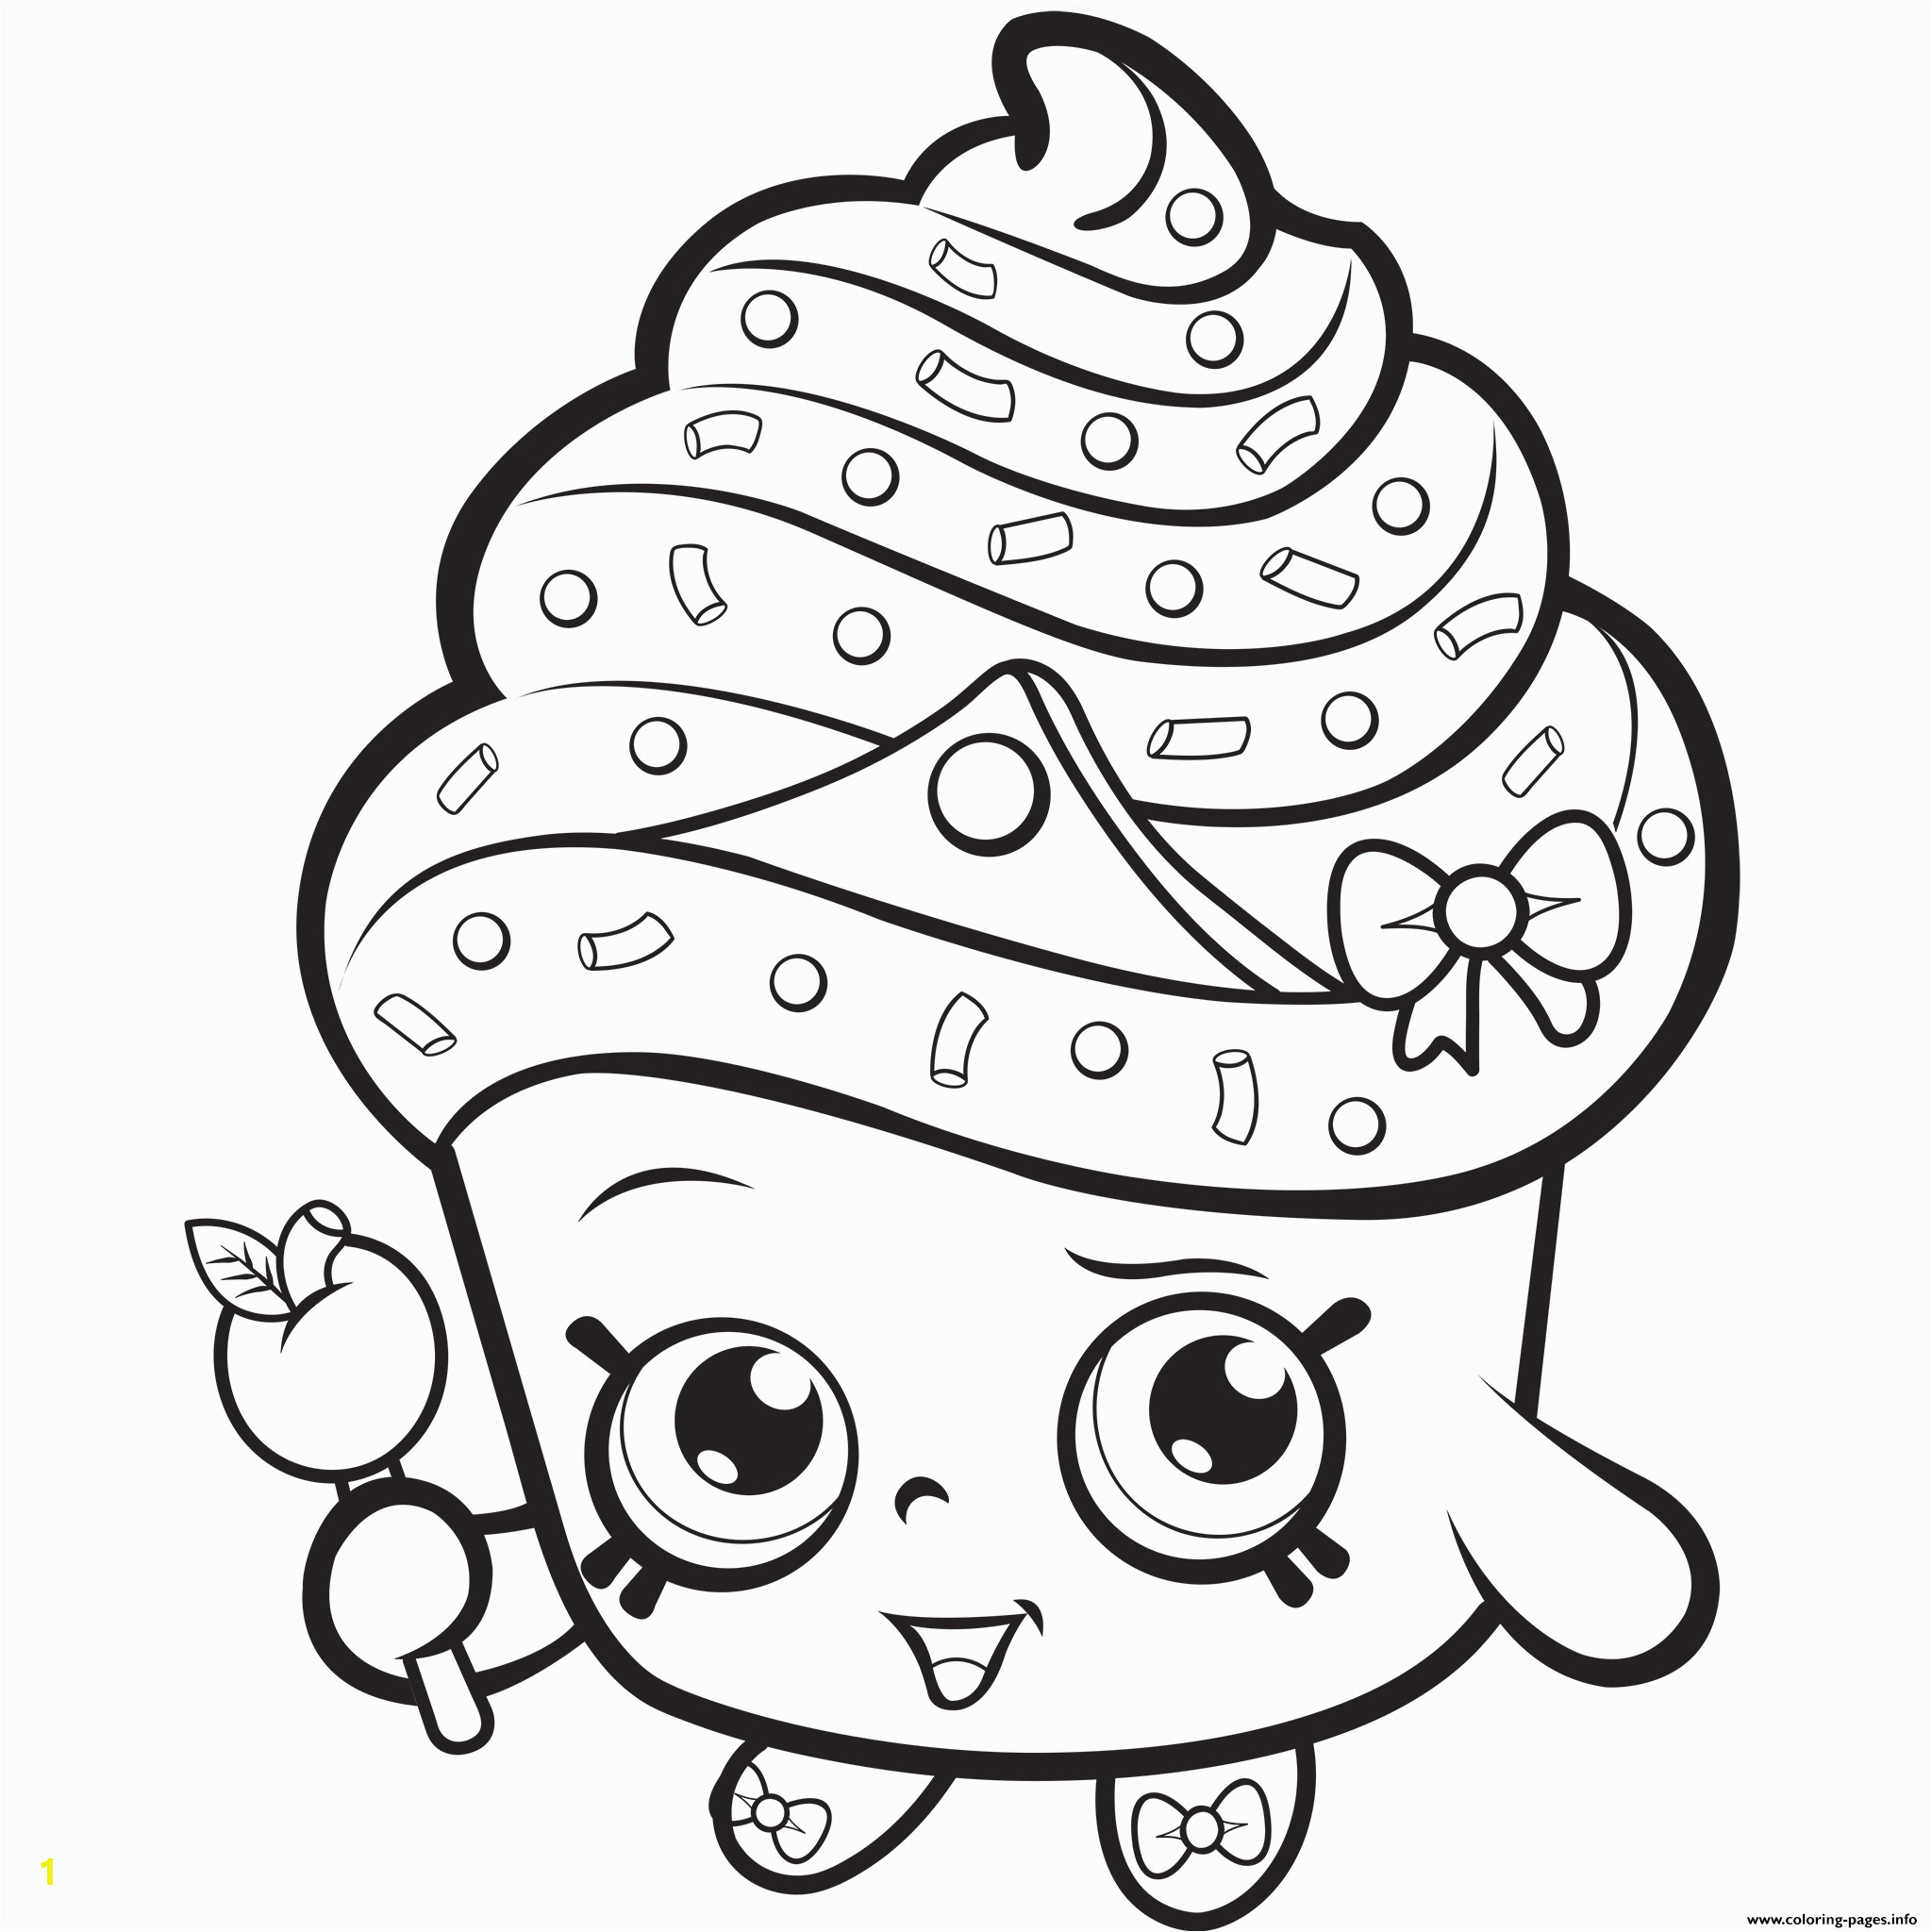 1b9b aa6d8d9d8ccdbd07db2952 28 collection of princess cupcake coloring pages high quality 2048 2048